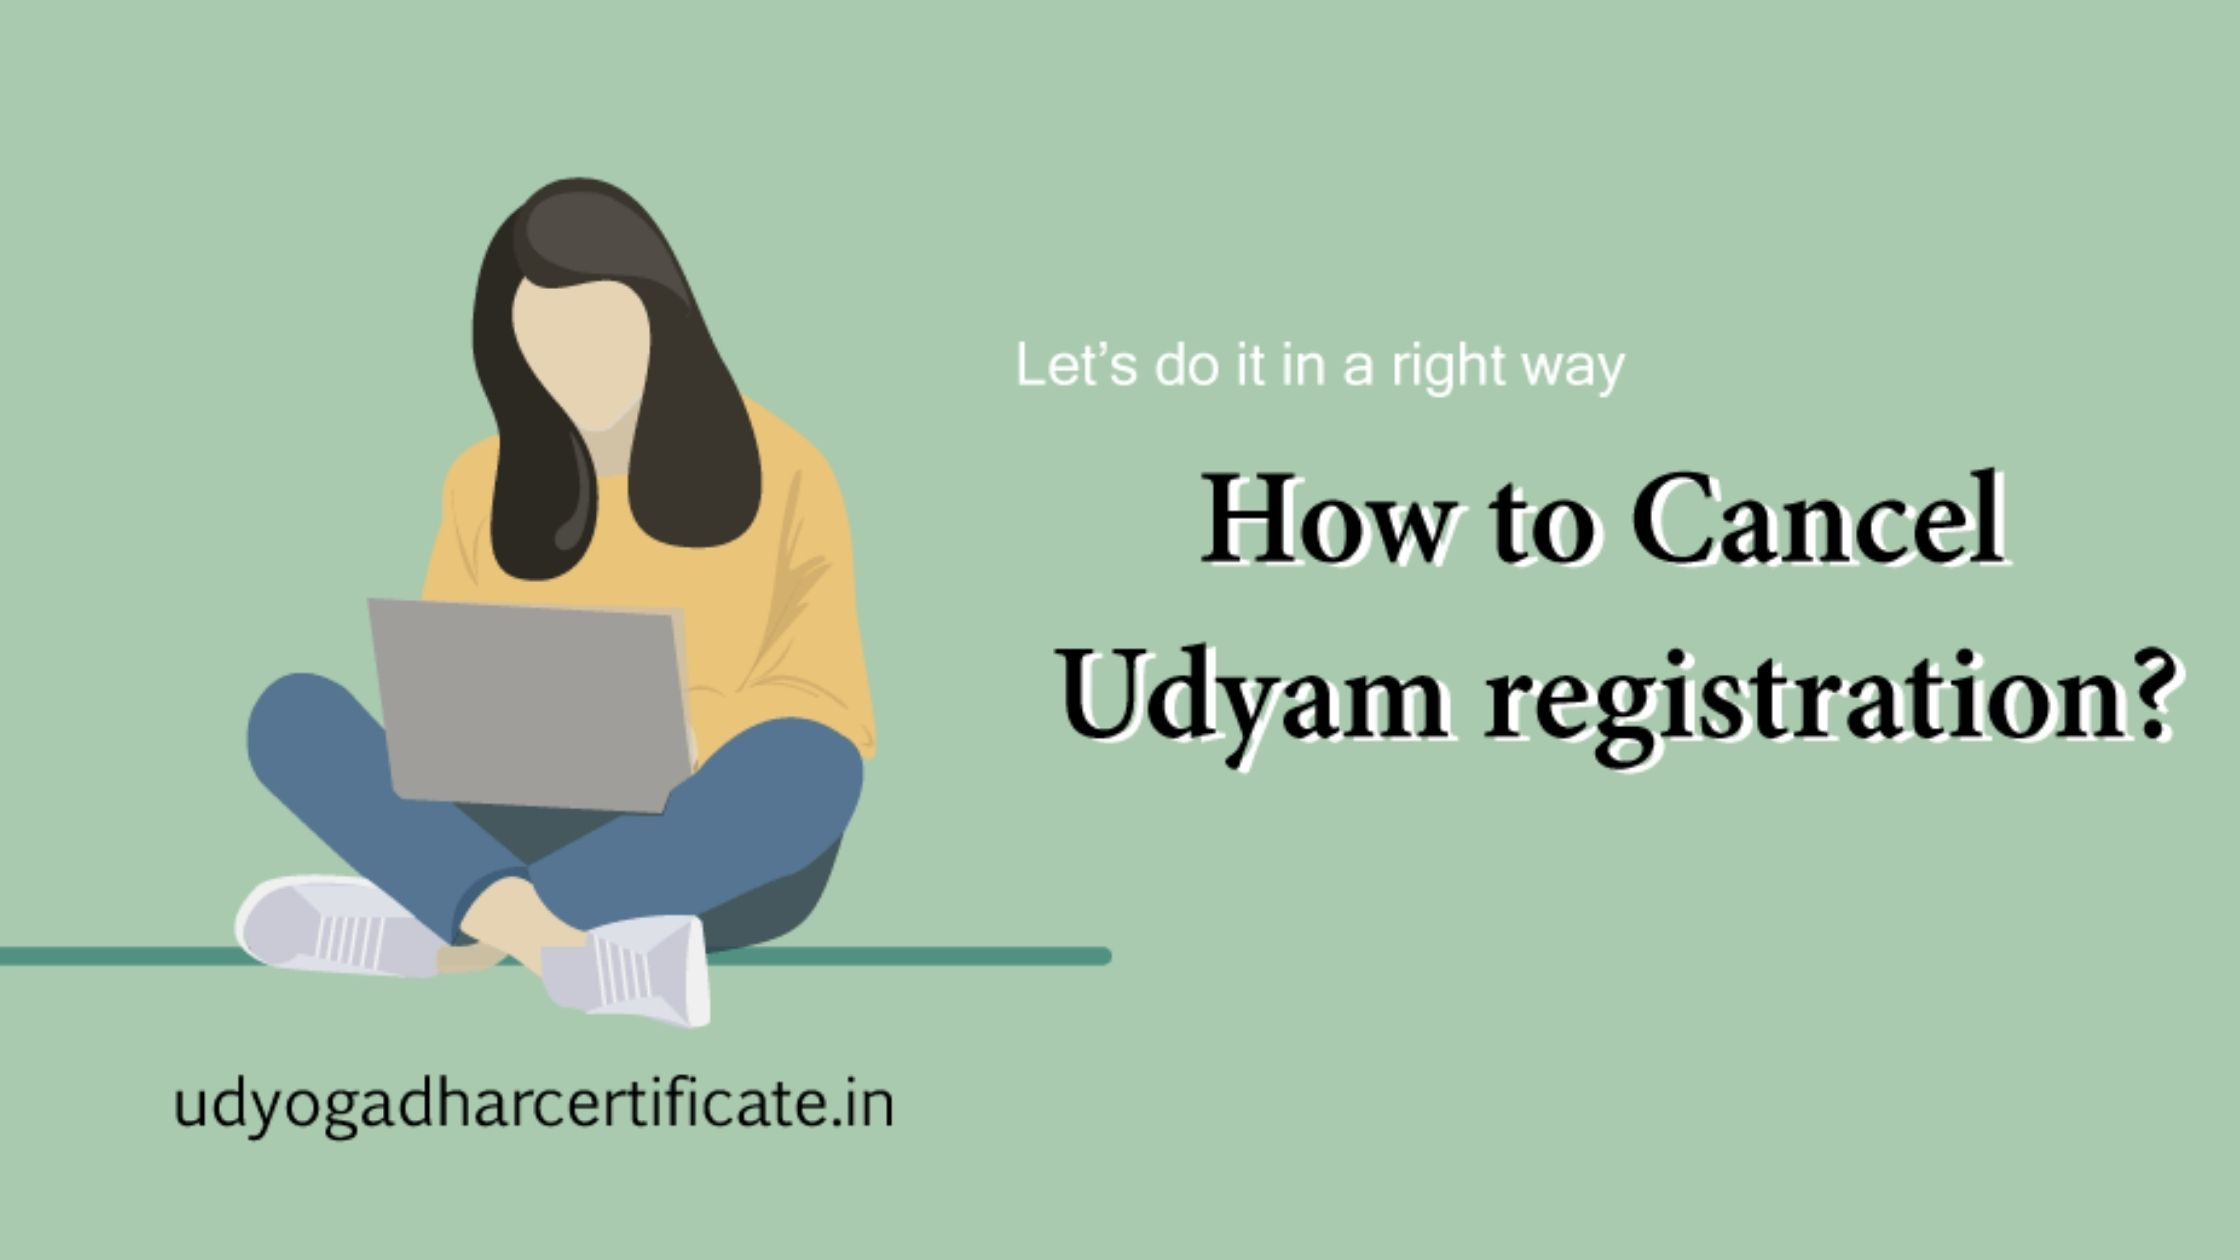 How to Cancel Udyam registration | Udyogadharcertificate.in